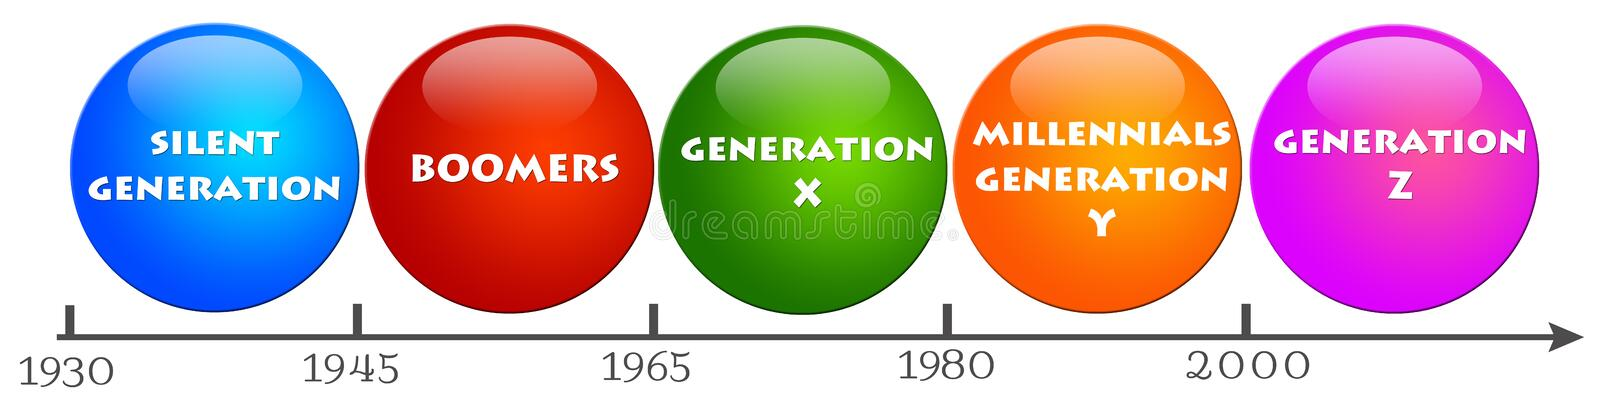 People generations. Different generations with their years of birth royalty free illustration